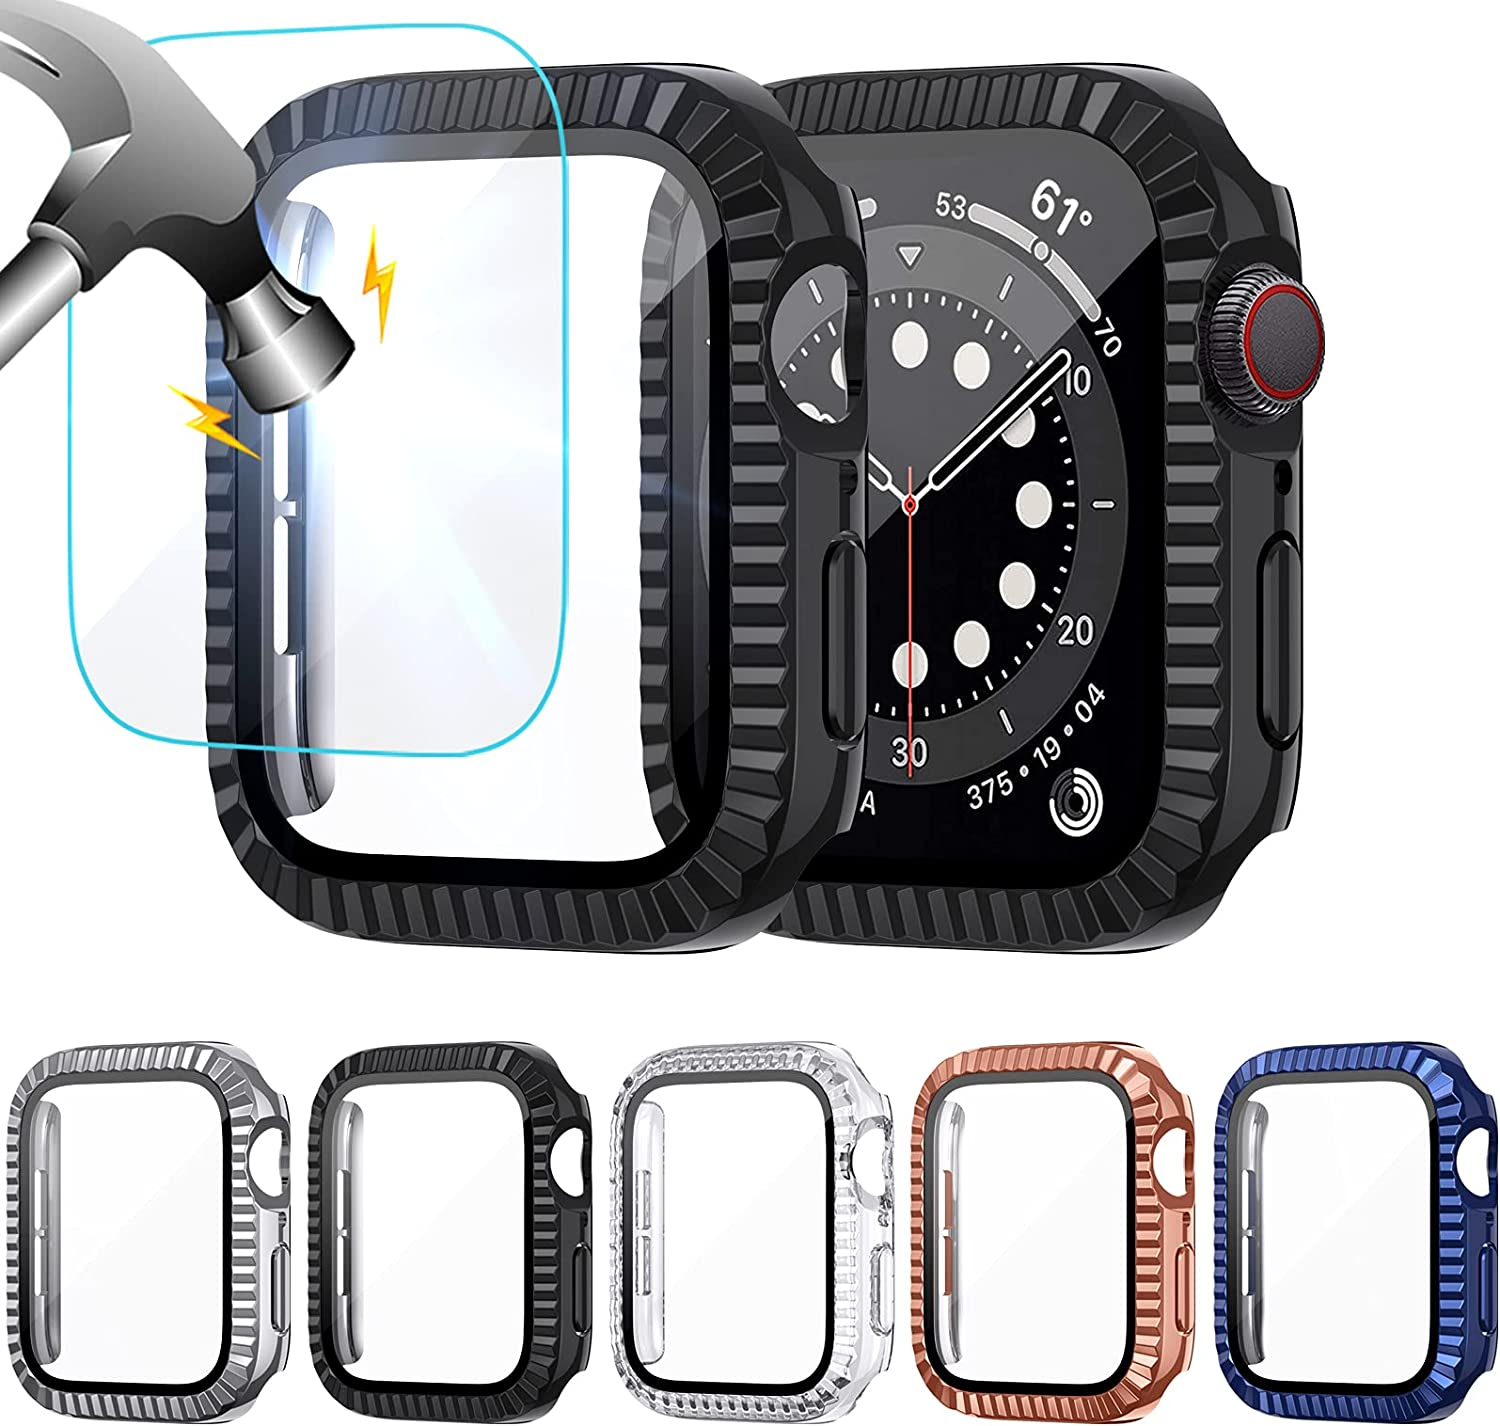 NANW 5-Pack Protective Case Compatible with Apple Watch Series 6/5/4/SE, Full Coverage Screen Protector, HD Clear Bumper, Film Cover Accessory Compatible with iWatch Series 6/5/4/SE for Women Men-44mm